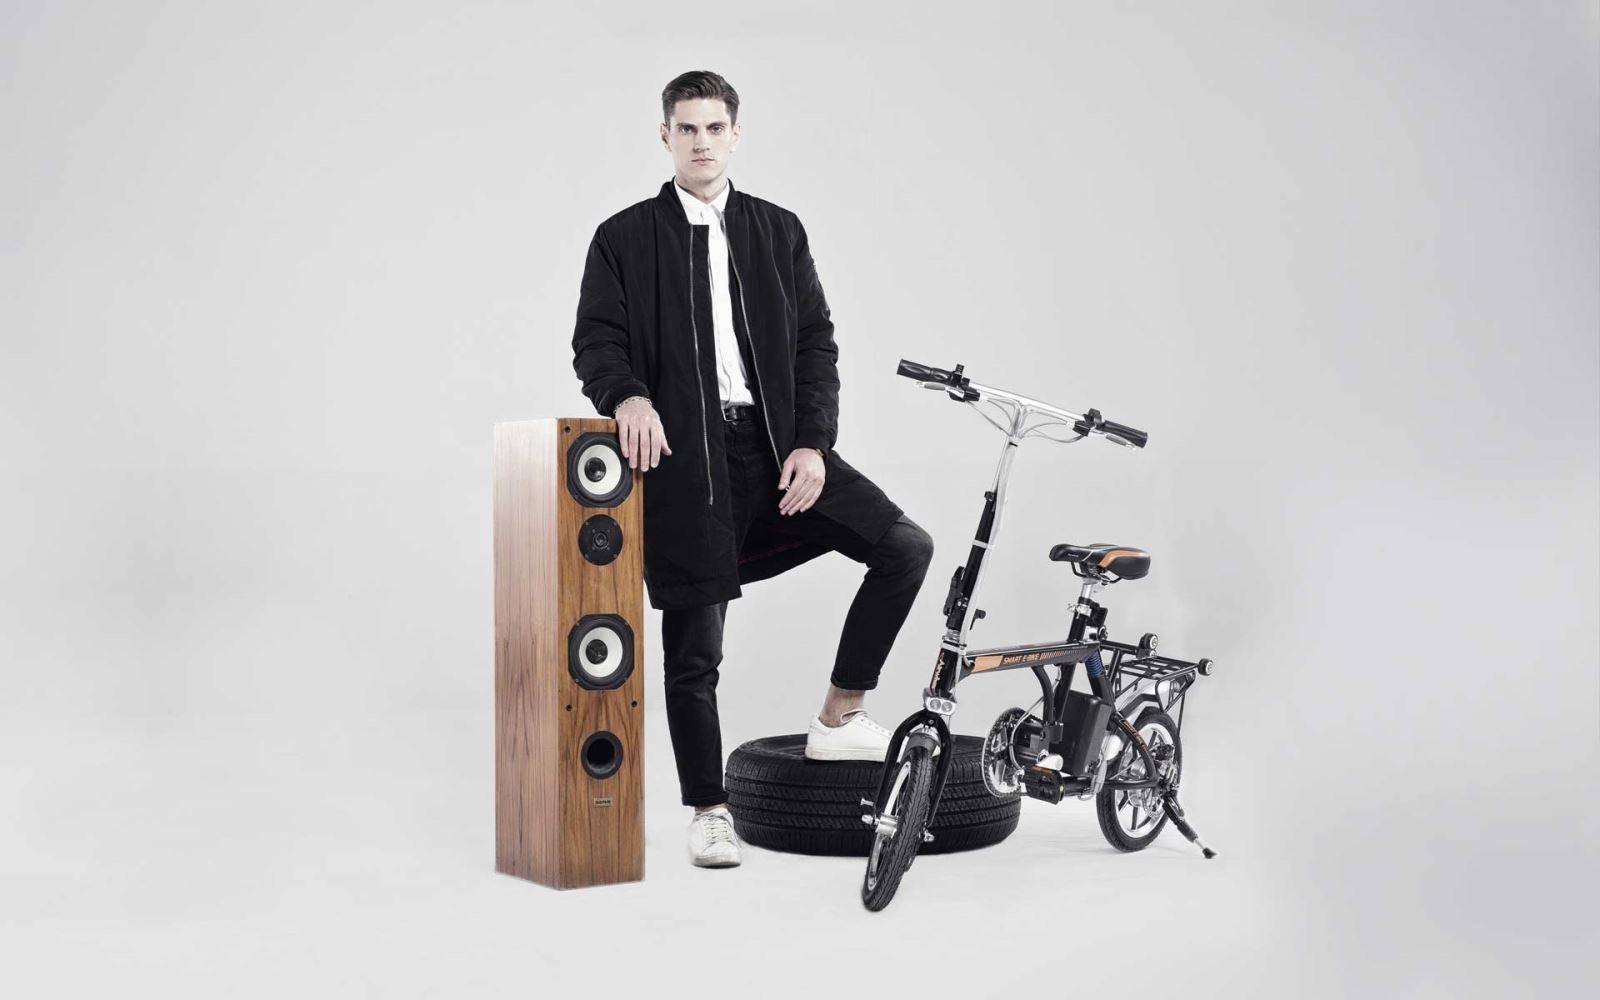 Airwheel R3 electric moped bike.